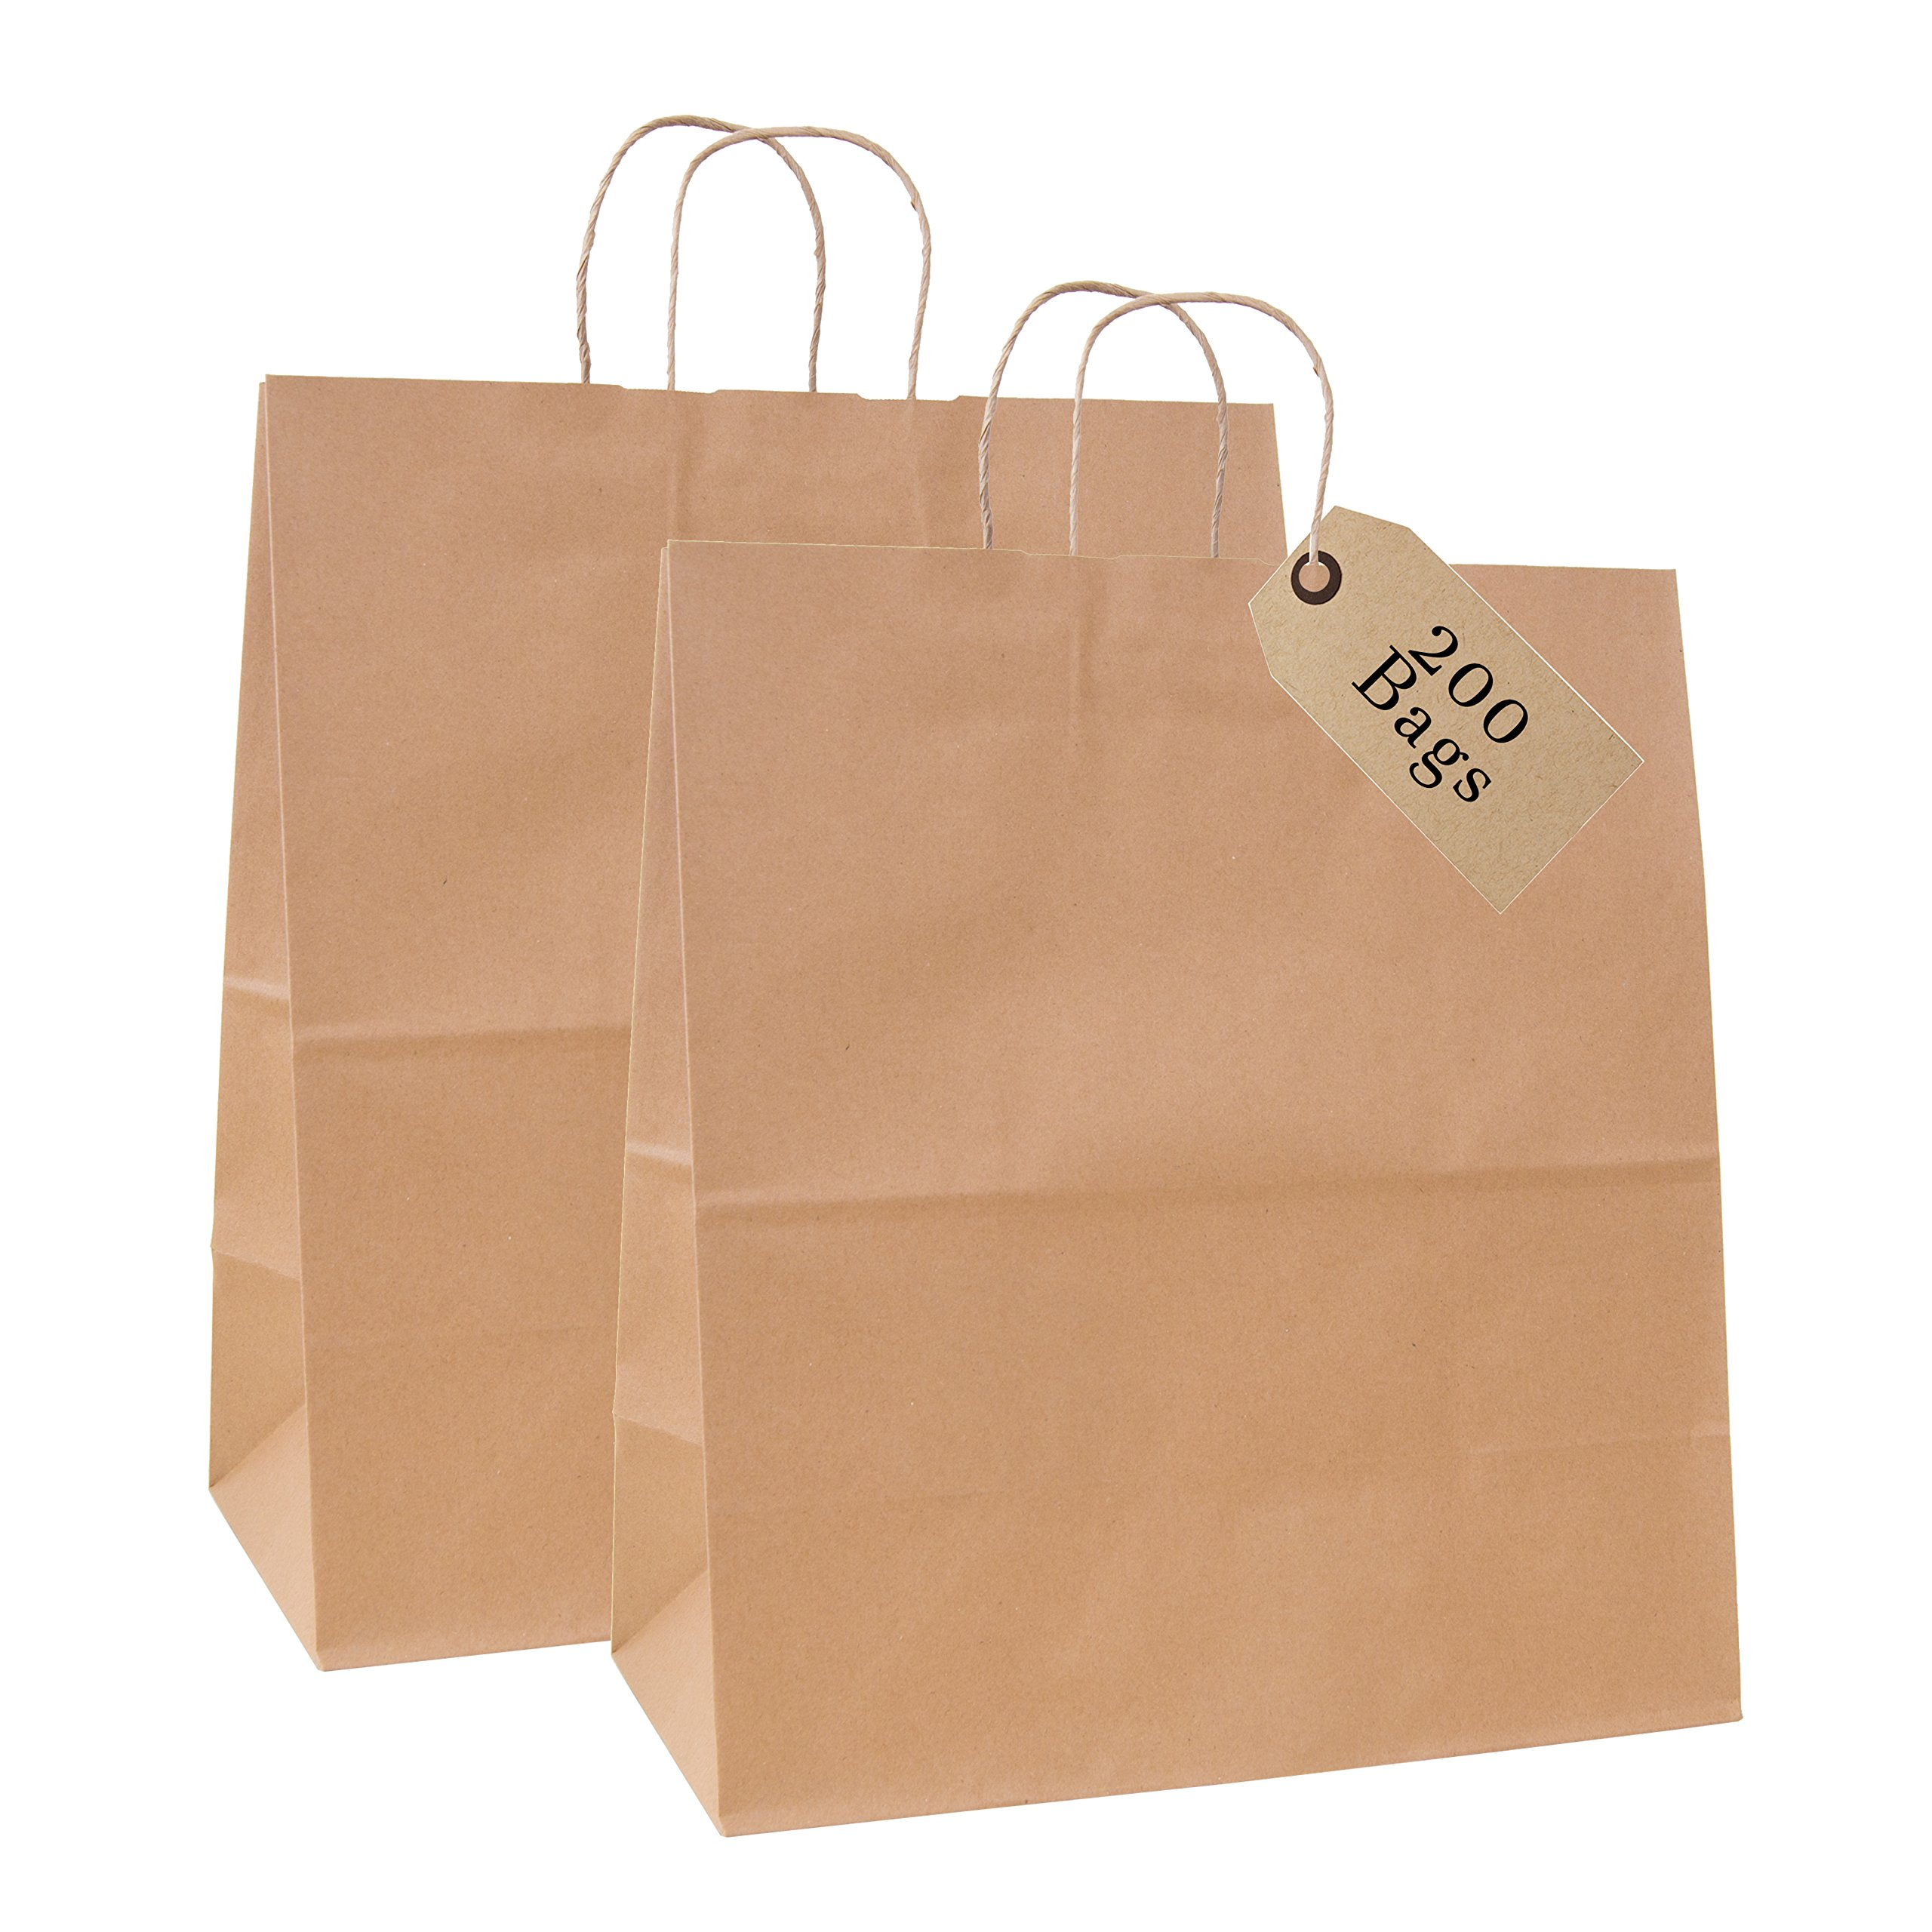 Incredible Packaging - 18'' x 7'' x 18'' Jumbo Kraft Paper Bags with Handles for Shopping, Retail and Merchandise. Strong and Reusable - 80 Paper Thickness- 100% Recycled (200, Brown) by Incredible Packaging (Image #1)